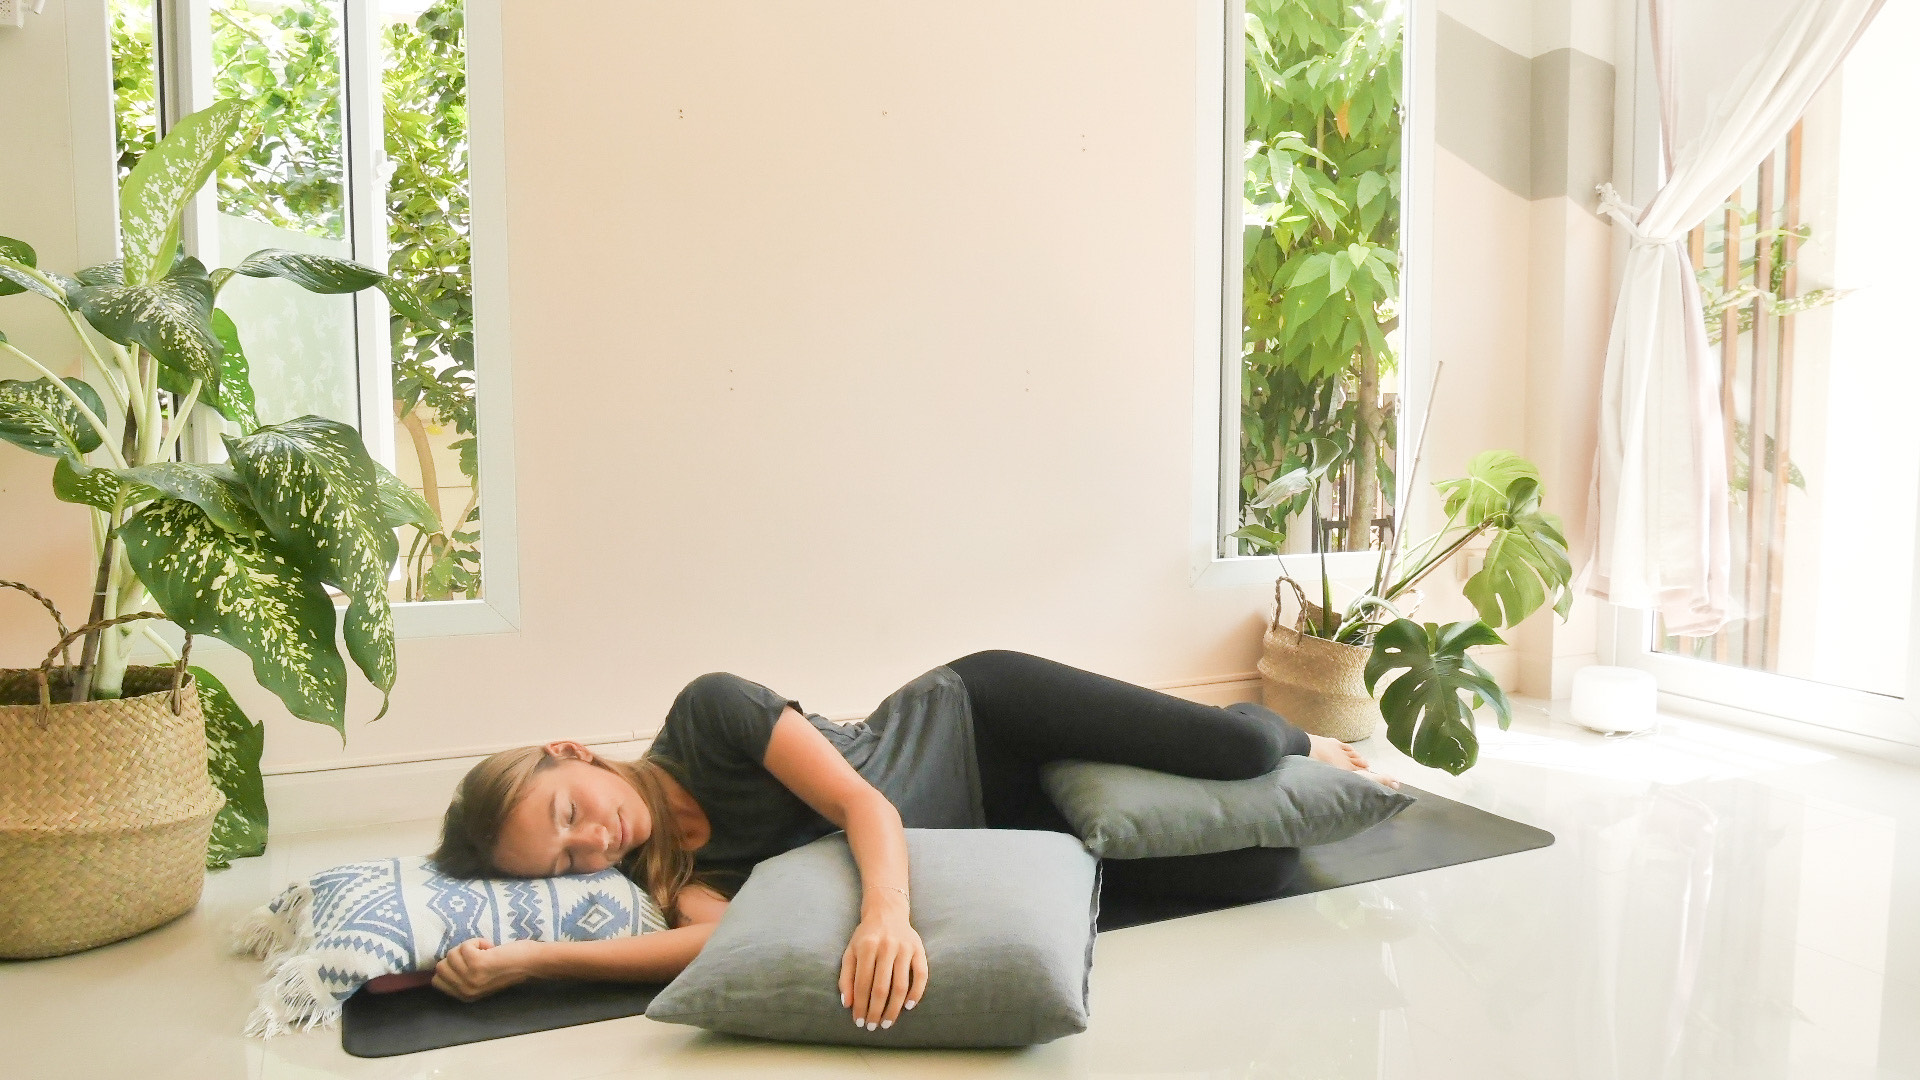 The Benefits of Restorative Yoga for New Parents